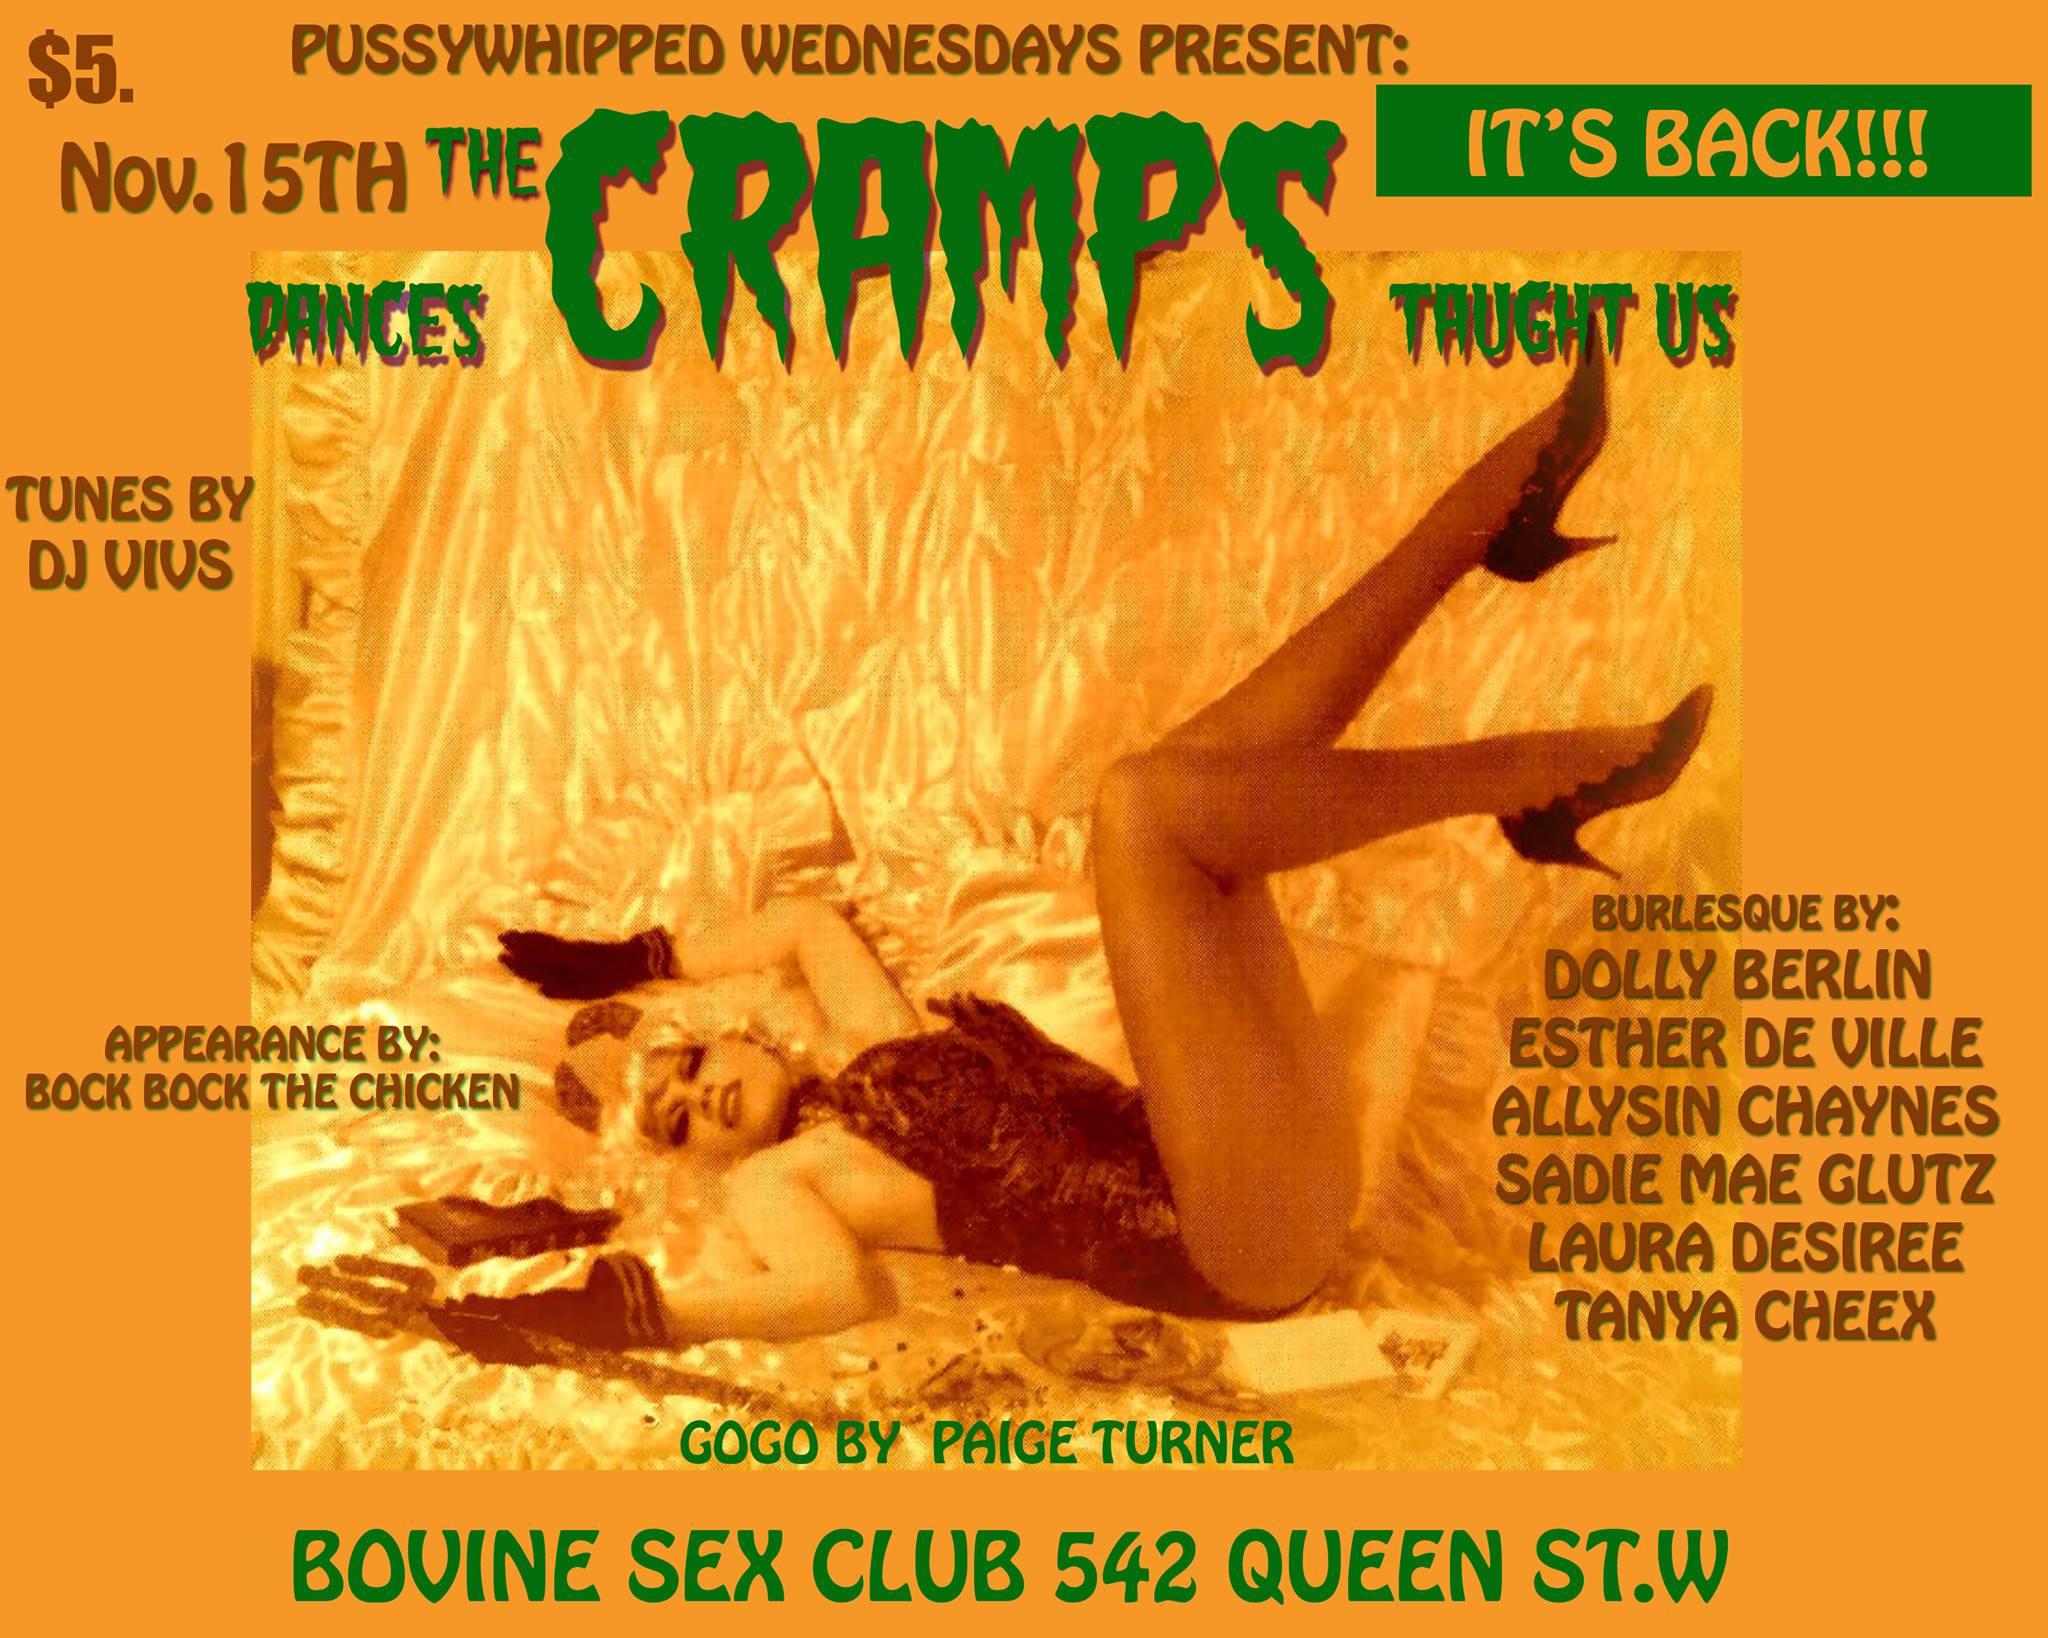 PWW:The Dances the Cramps showed us